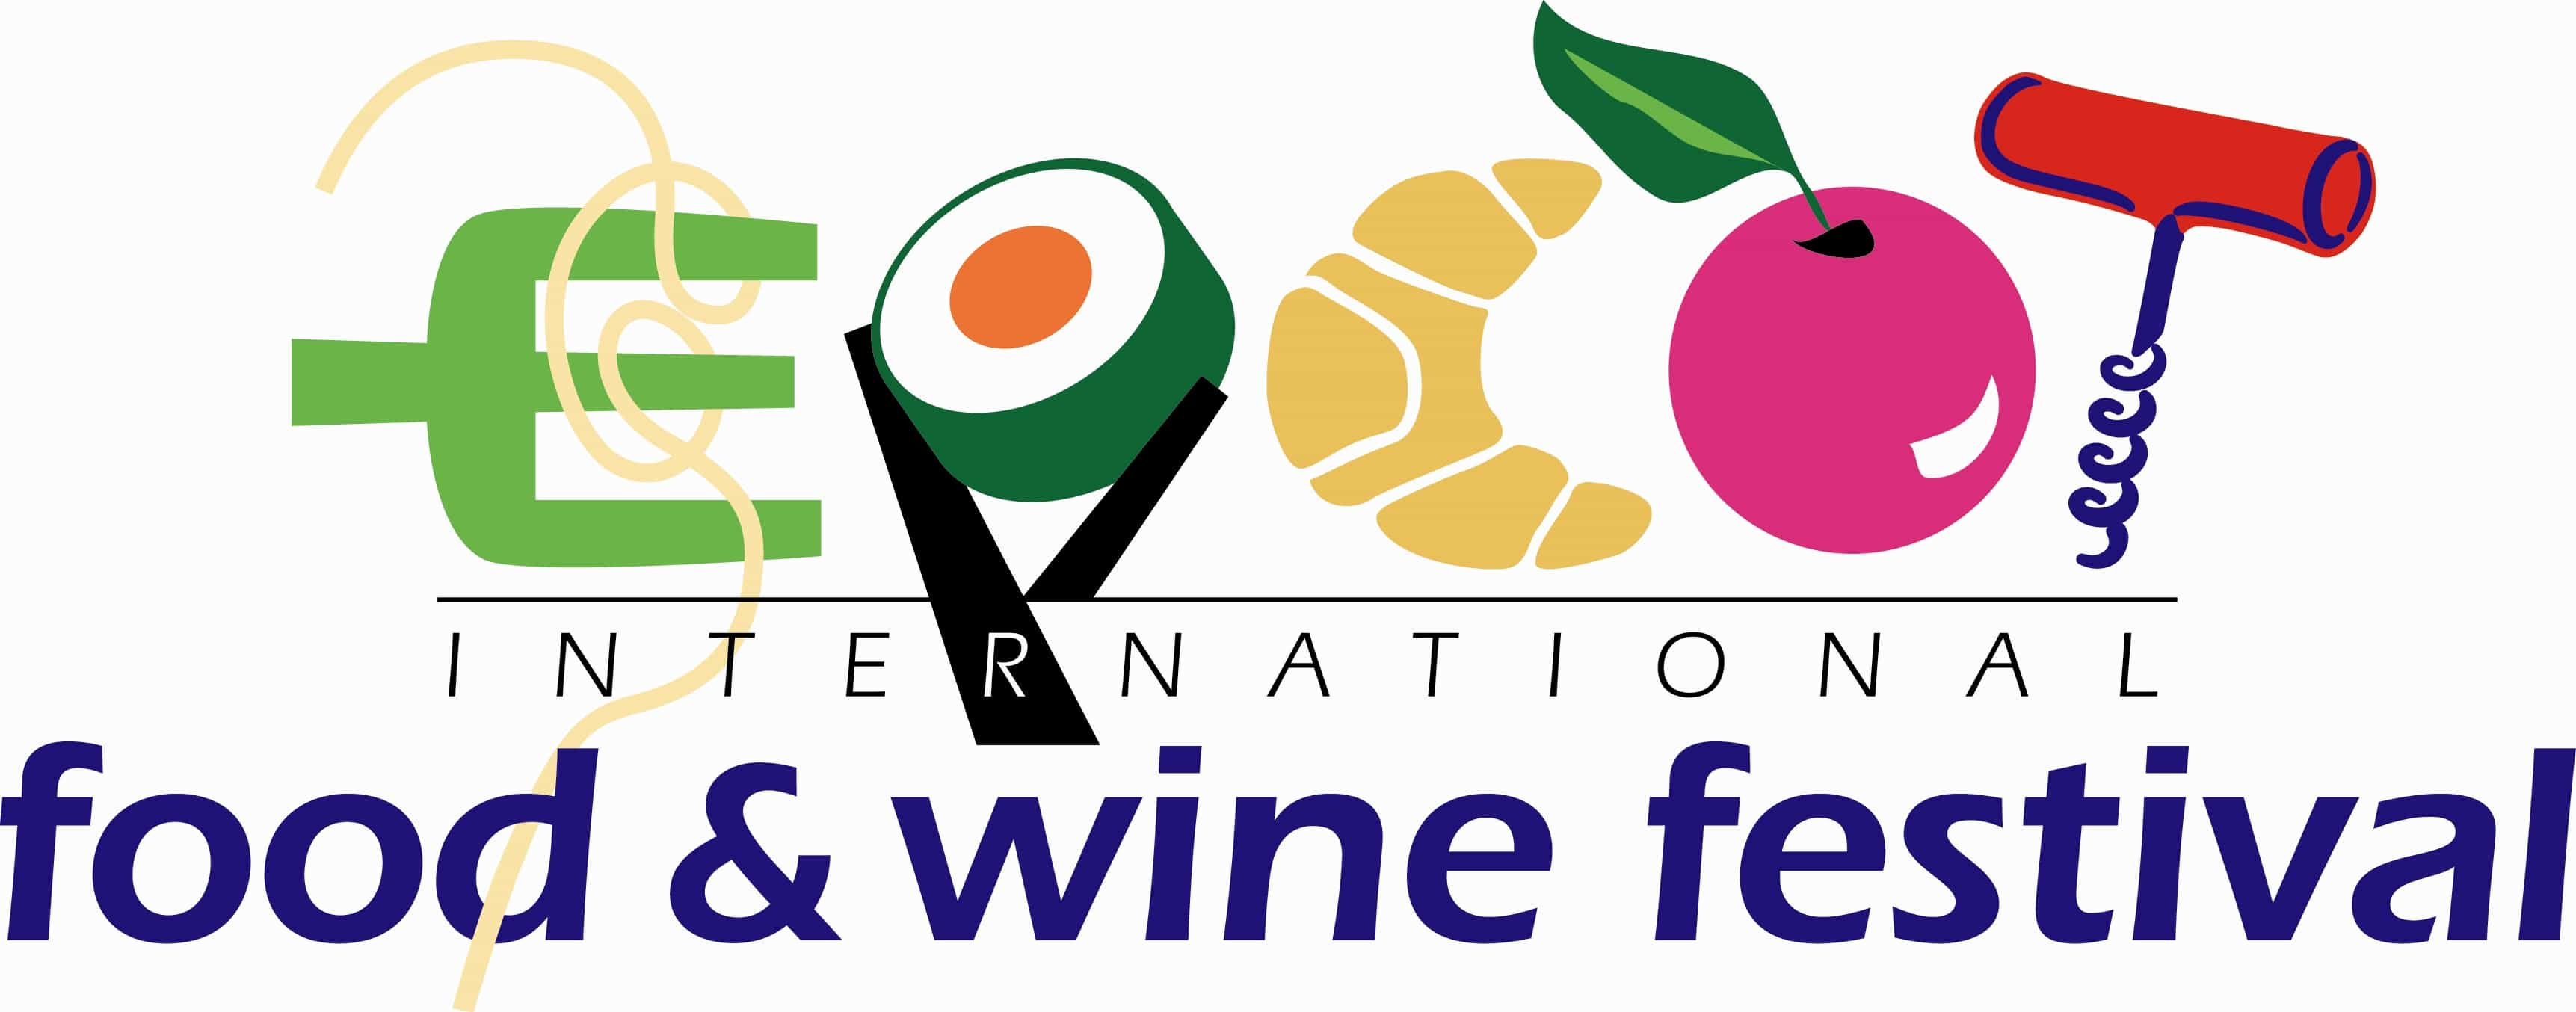 epcot-food__wine_festival_logo1